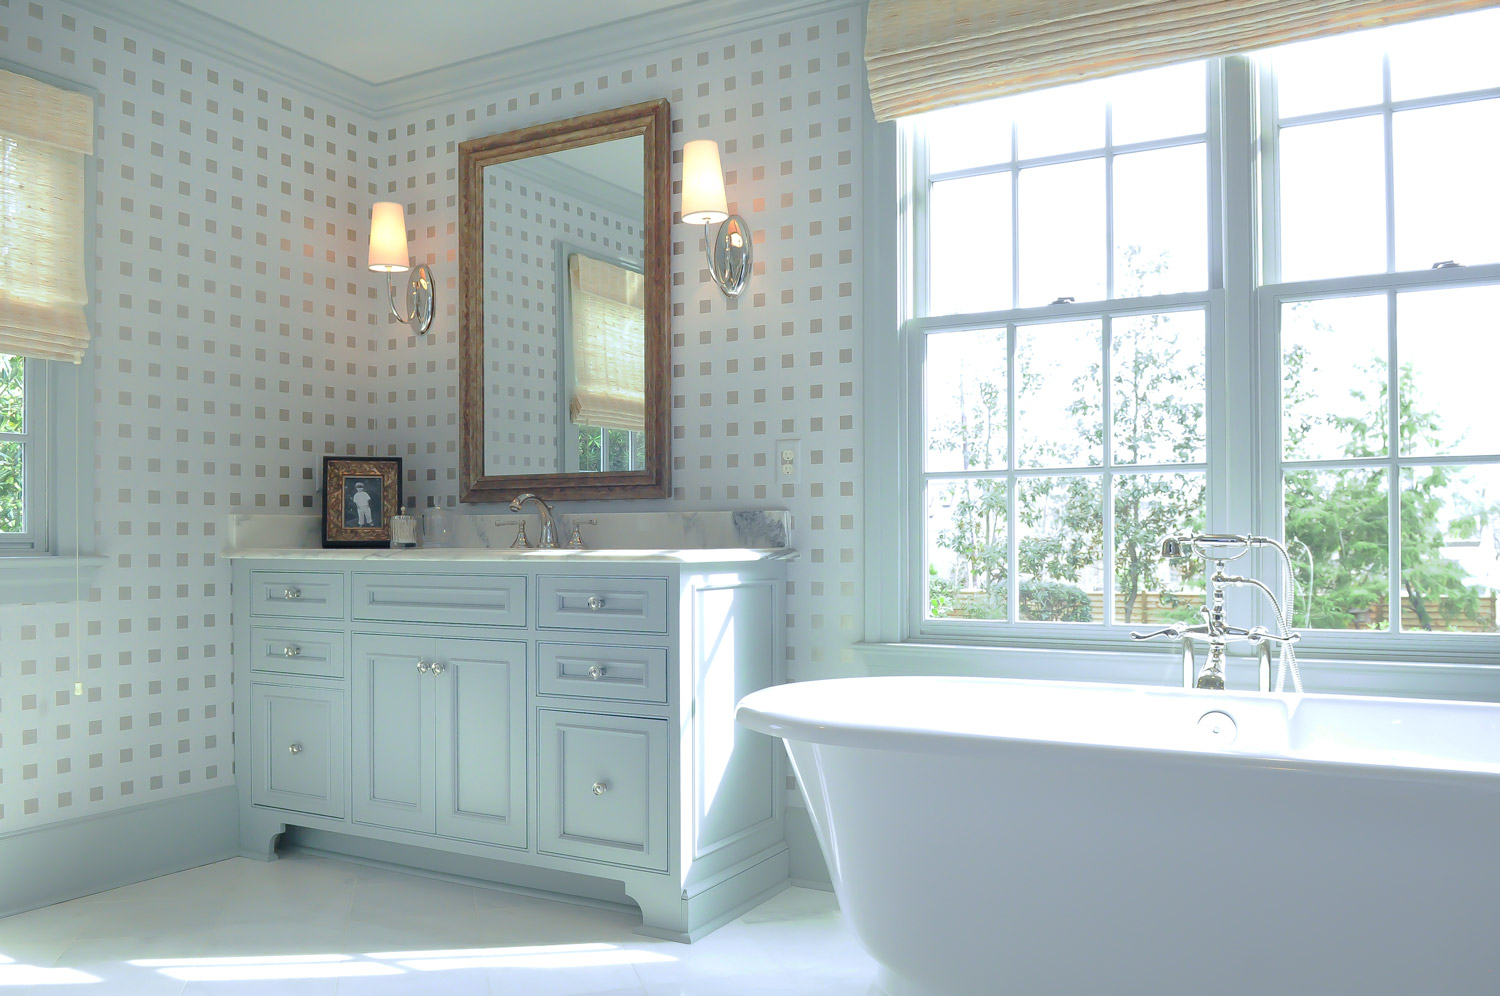 Preparing For A New Bathroom Design and Remodel